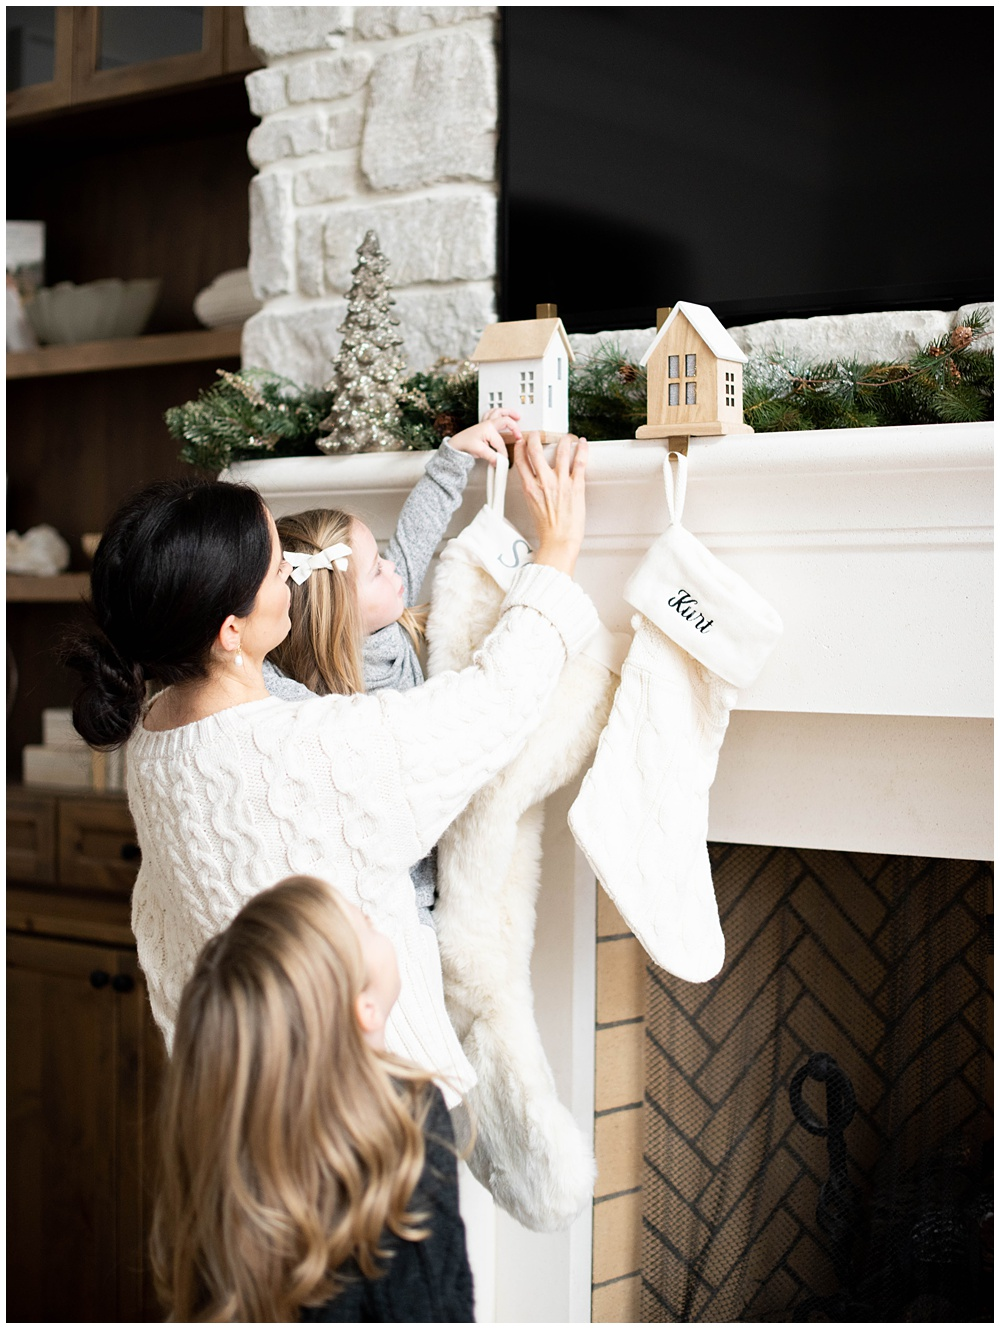 Christmas activities at home with the Wilson Girls | Seattle Fine Art Family Photographer | Destination Family Photographer